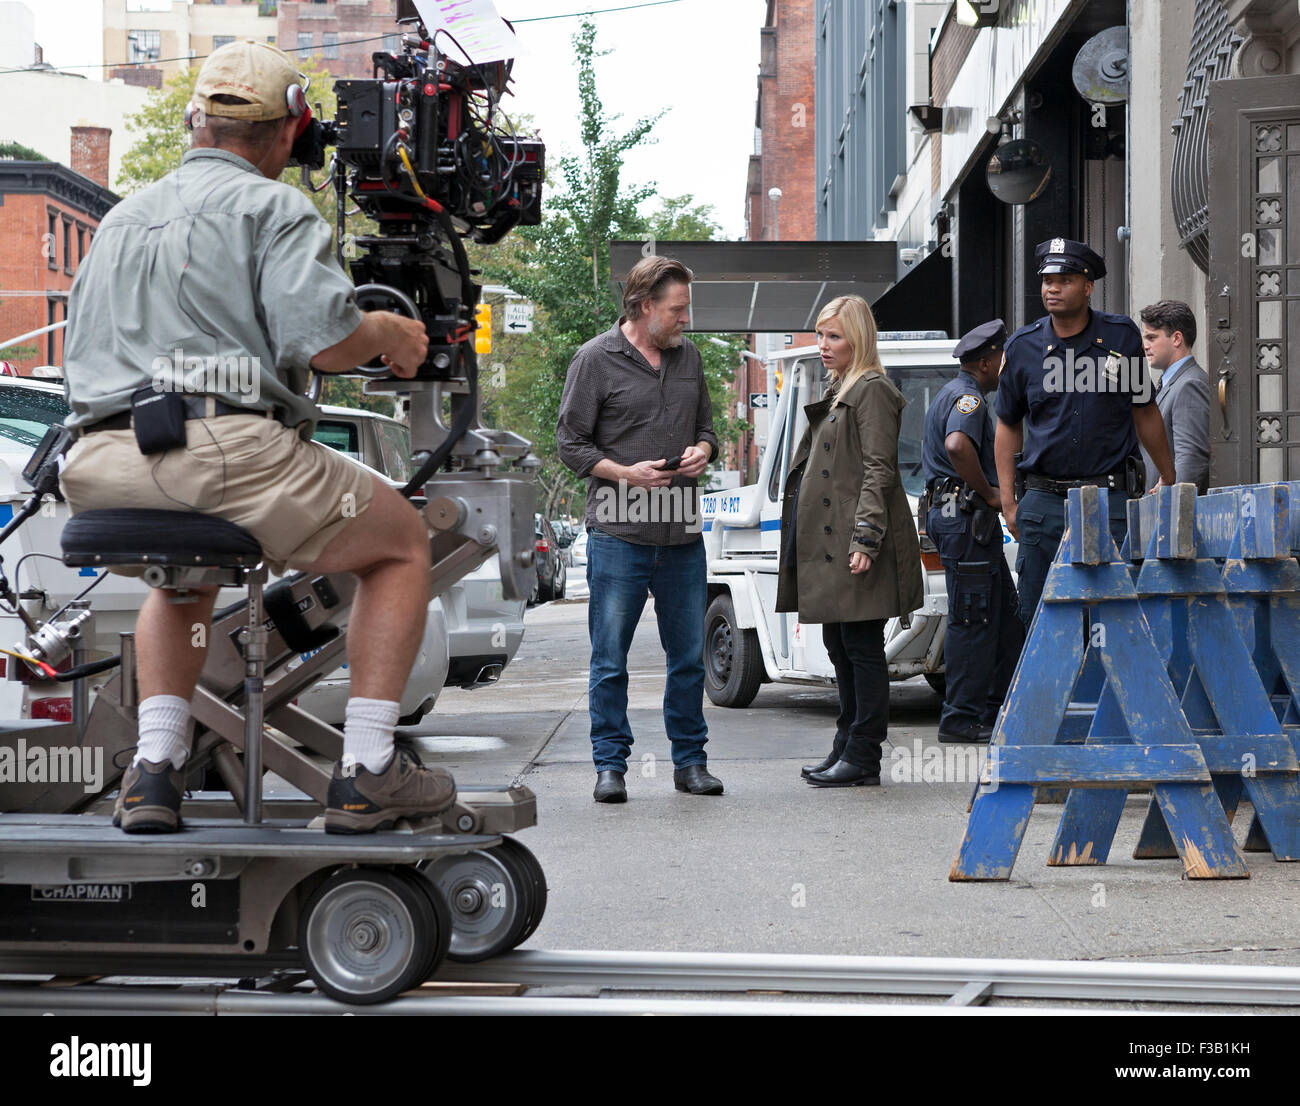 Kelli Giddish and Donal Logue film a scene for Law & Order: SVU in New York City. - Stock Image